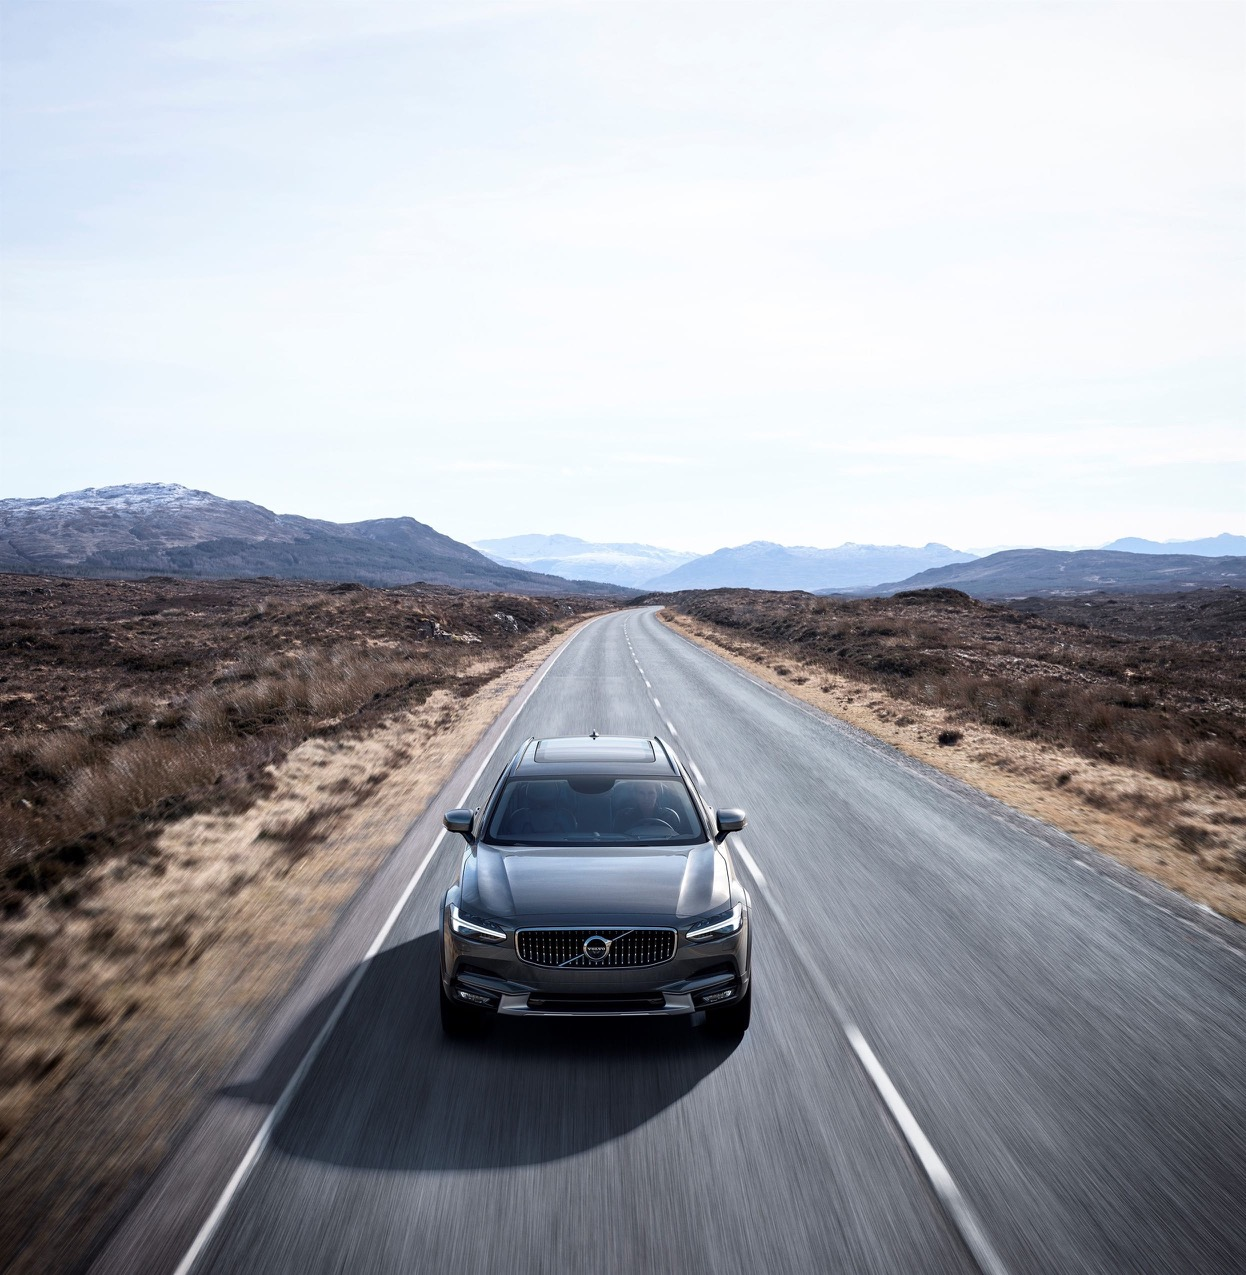 foto volvo v90 cross country immagini hd